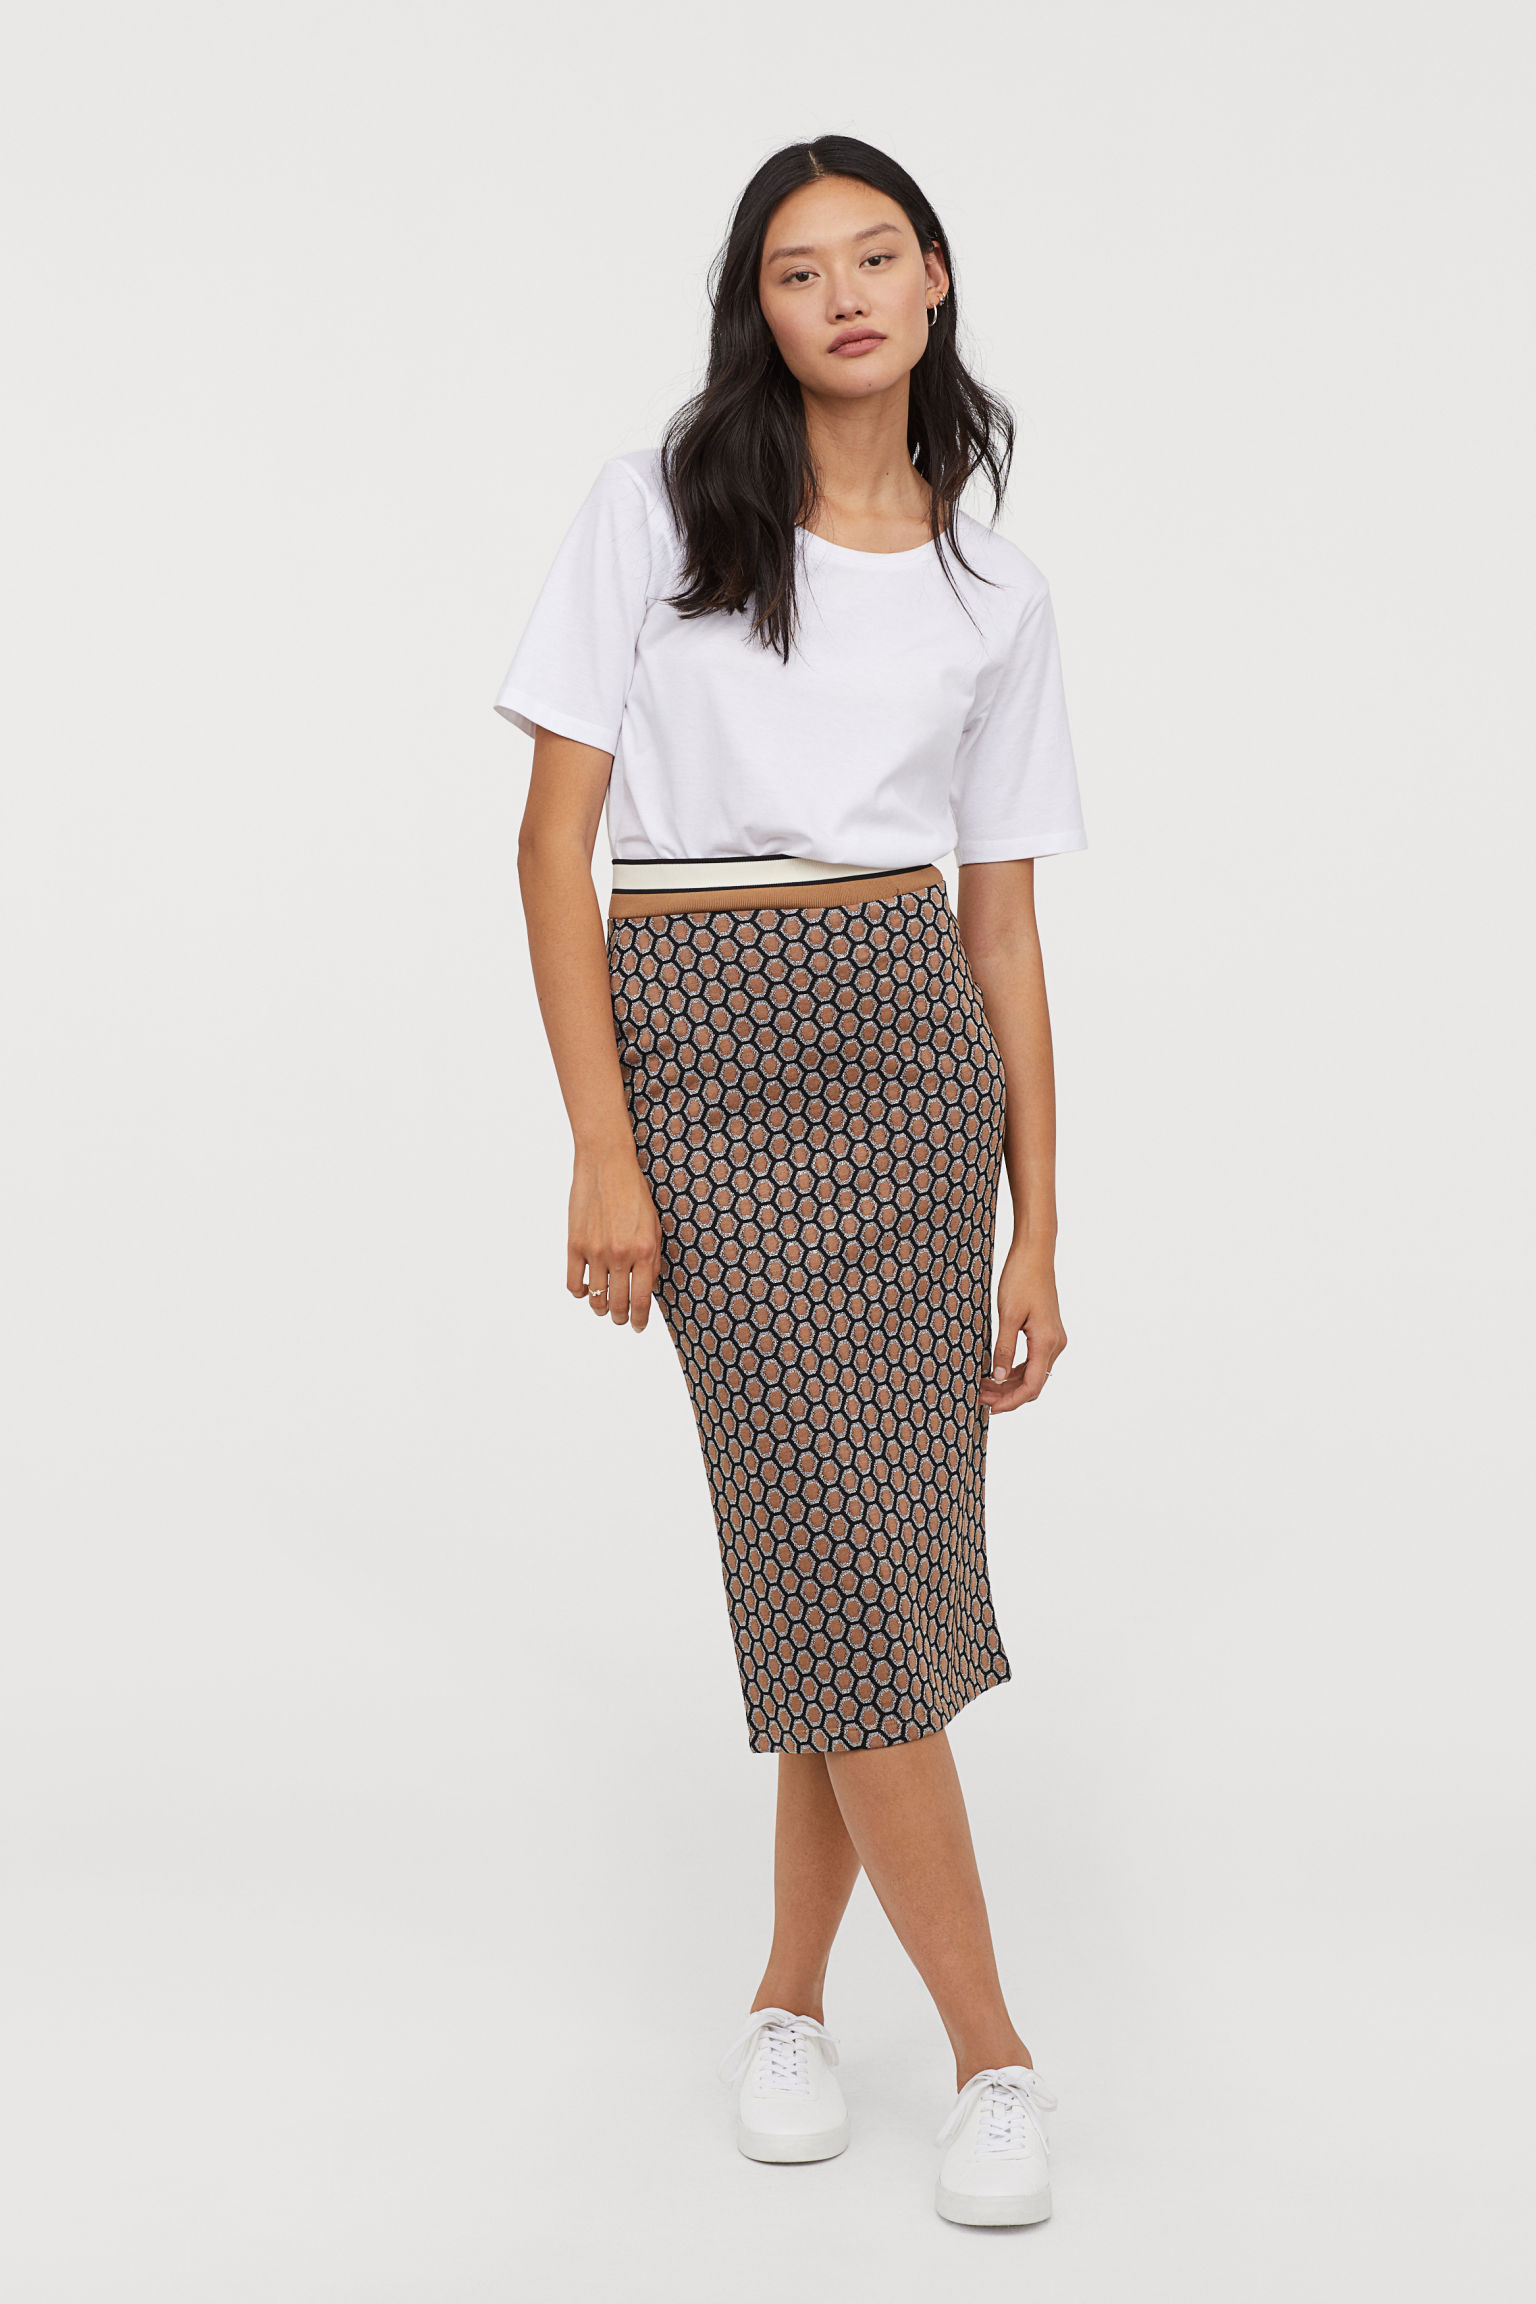 Patterned Pencil Skirt - Dark beige/patterned - Ladies | H&M US